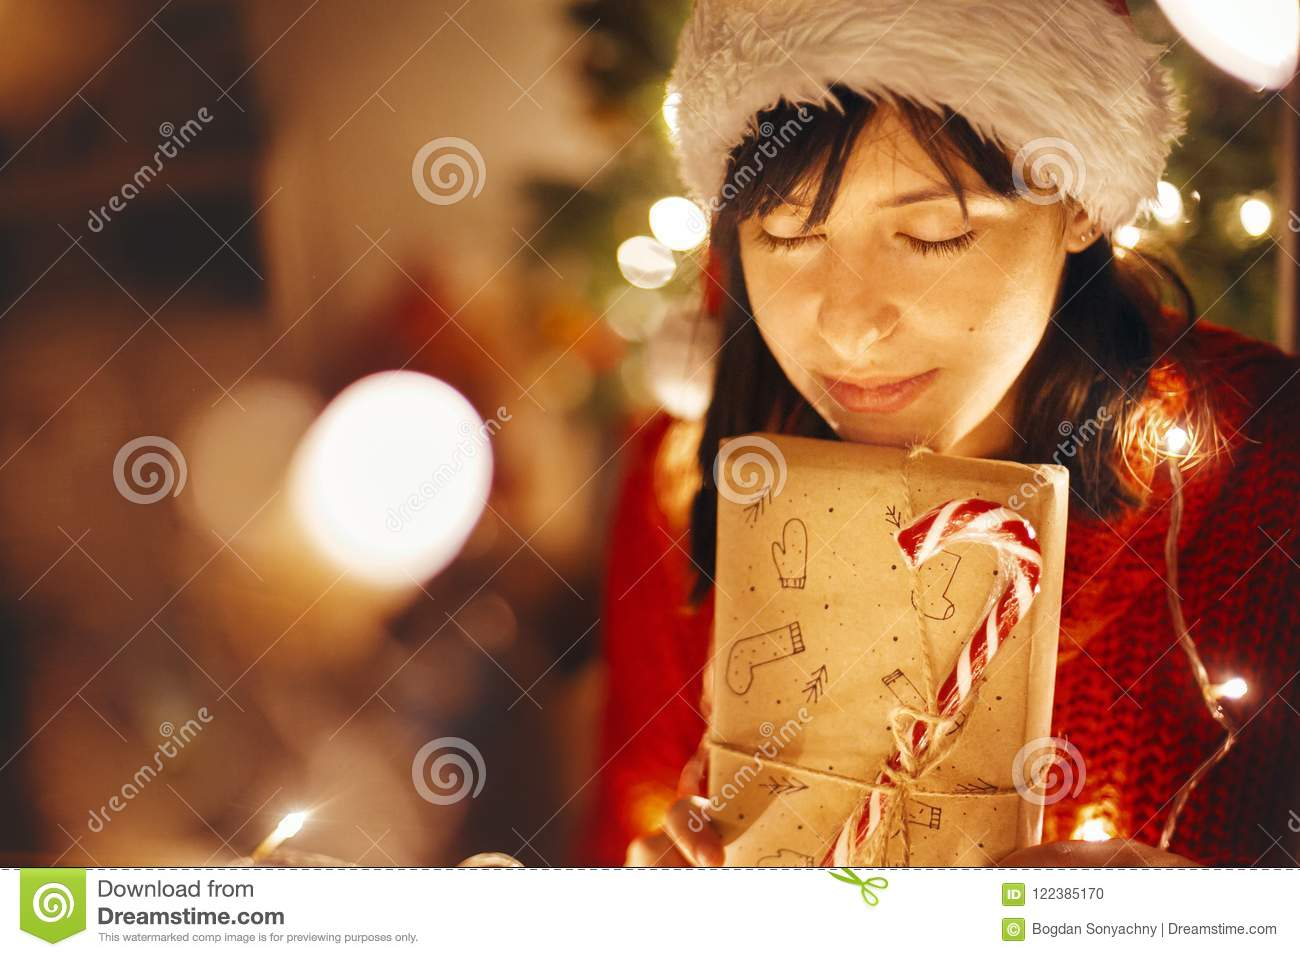 3e35d344553f3 Christmas magic moments. girl in santa hat and red sweater holding christmas  present in lights in evening festive room at tree illumination. merry  christmas ...